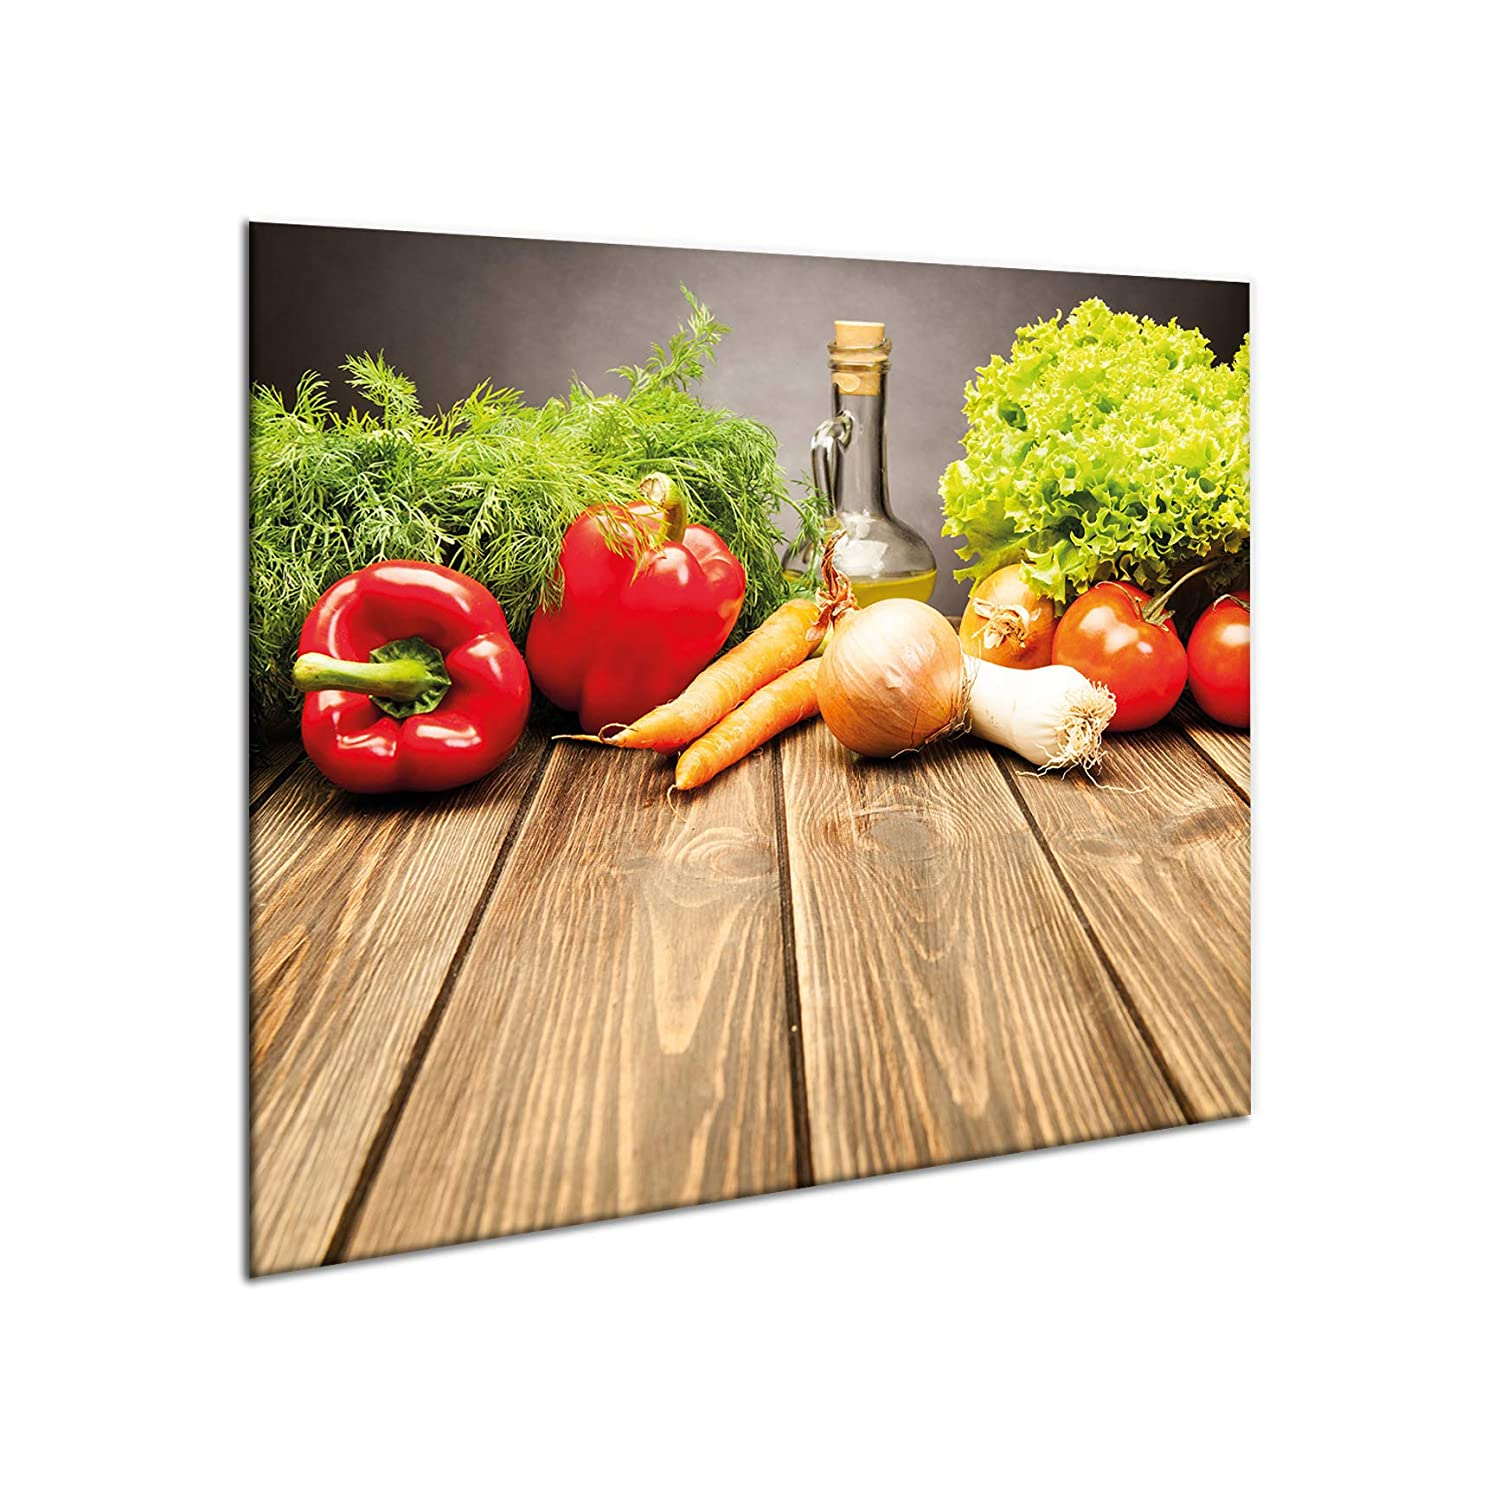 Glass hob protector   Giant chopping board   Splash-back guard   60cm x 52cm large universal worktop saver for induction electric ceramic halogen cookers   Hardened glass multi-use panel   Stove protector plate   Heat resistant & durable   by Sema Des